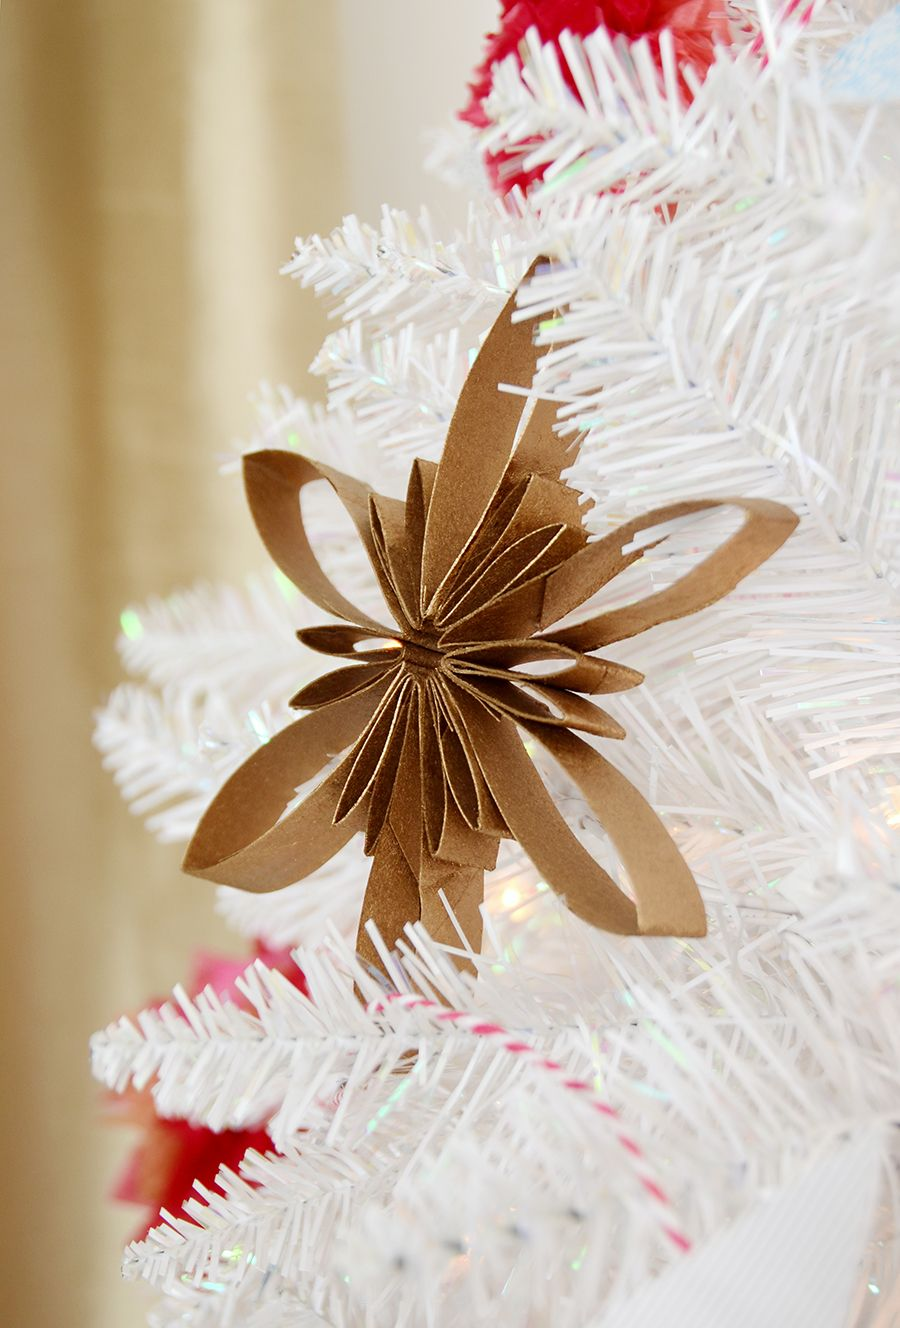 How To 3 Elegant Tree Decorations You Can Make From Recycled Paper Christmas Tree Decorations Diy Diy Paper Christmas Tree Paper Christmas Decorations